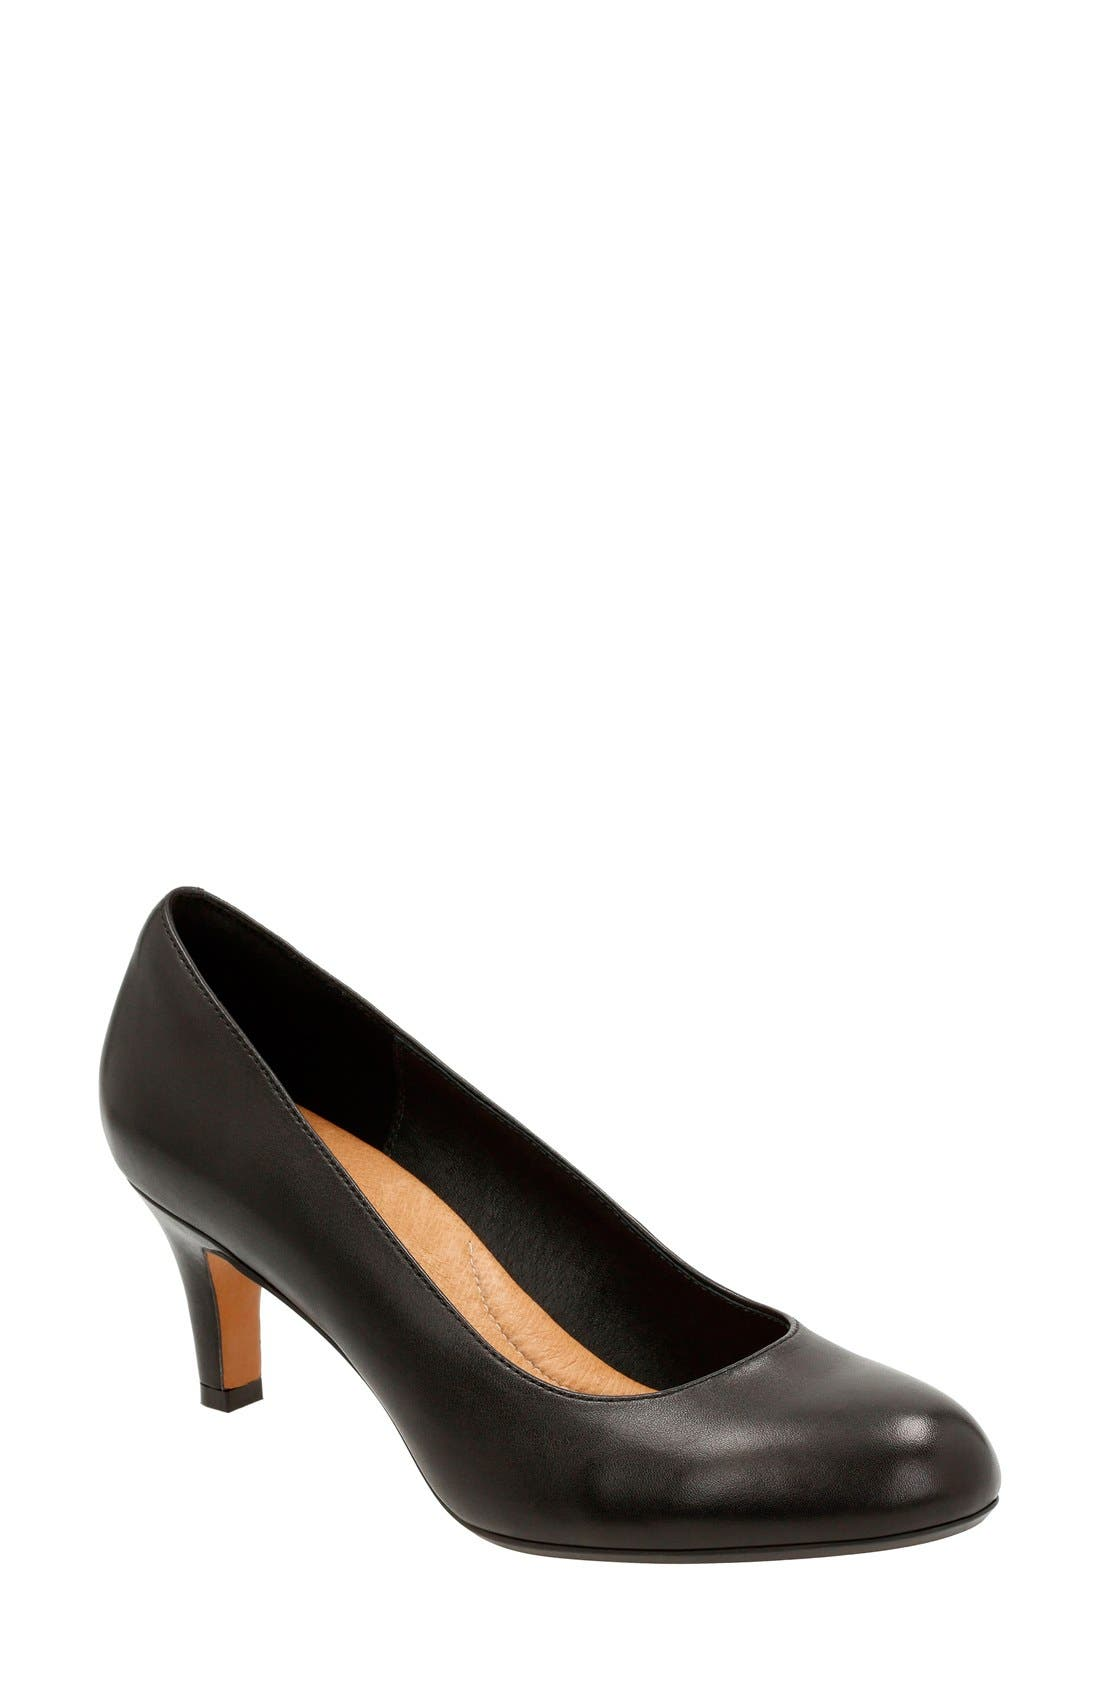 'Heavenly Heart' Pump,                         Main,                         color, Black Leather